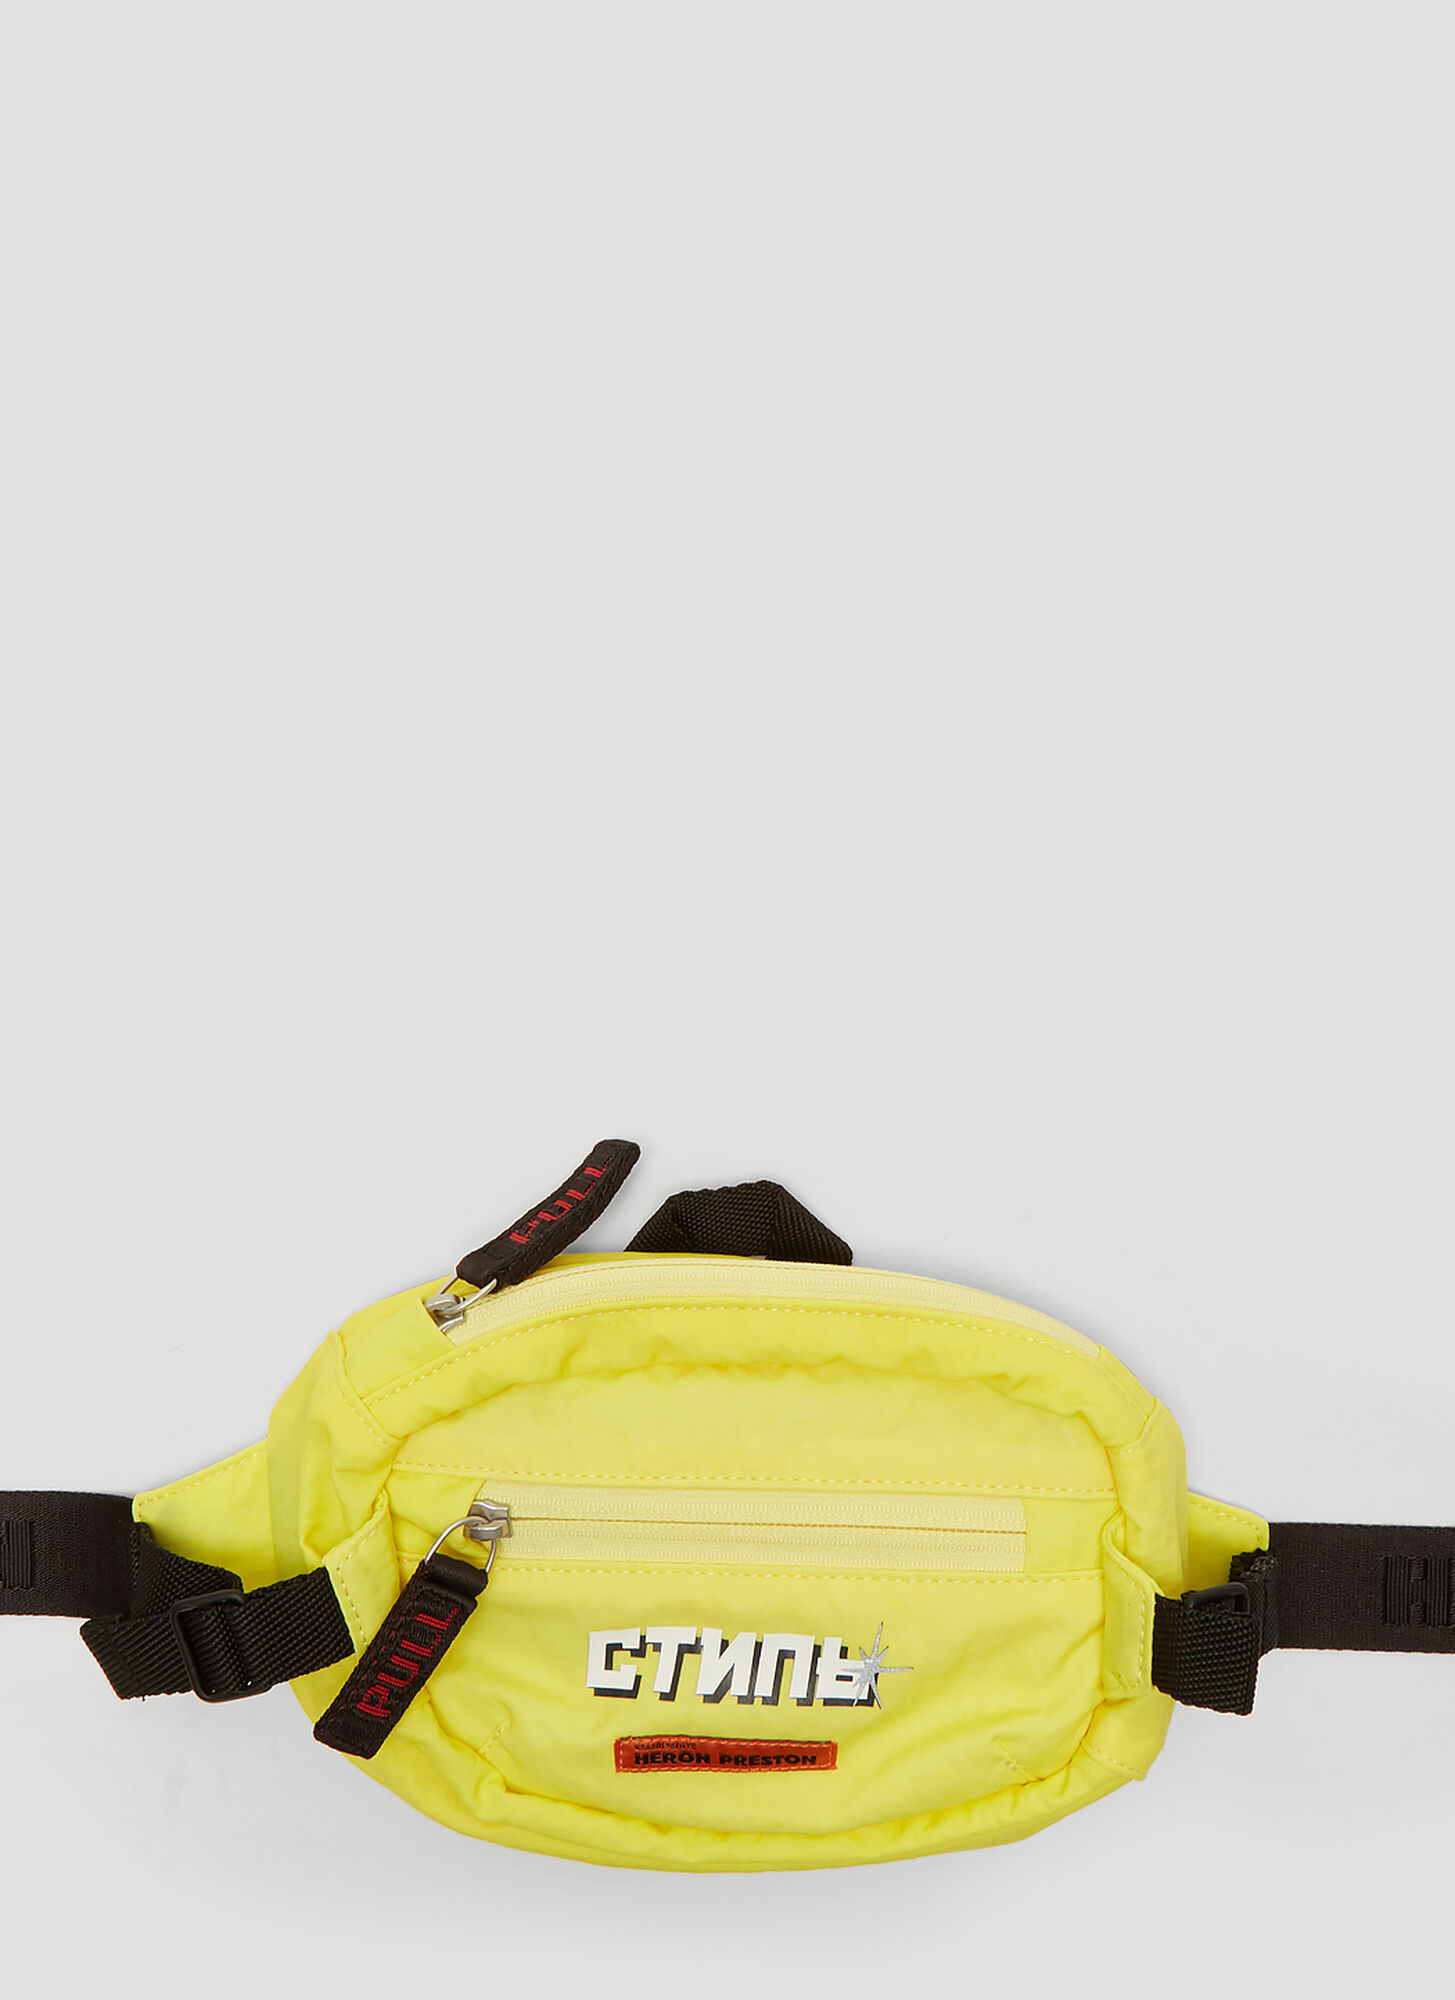 Heron Preston ????? Print Belt Bag in Yellow